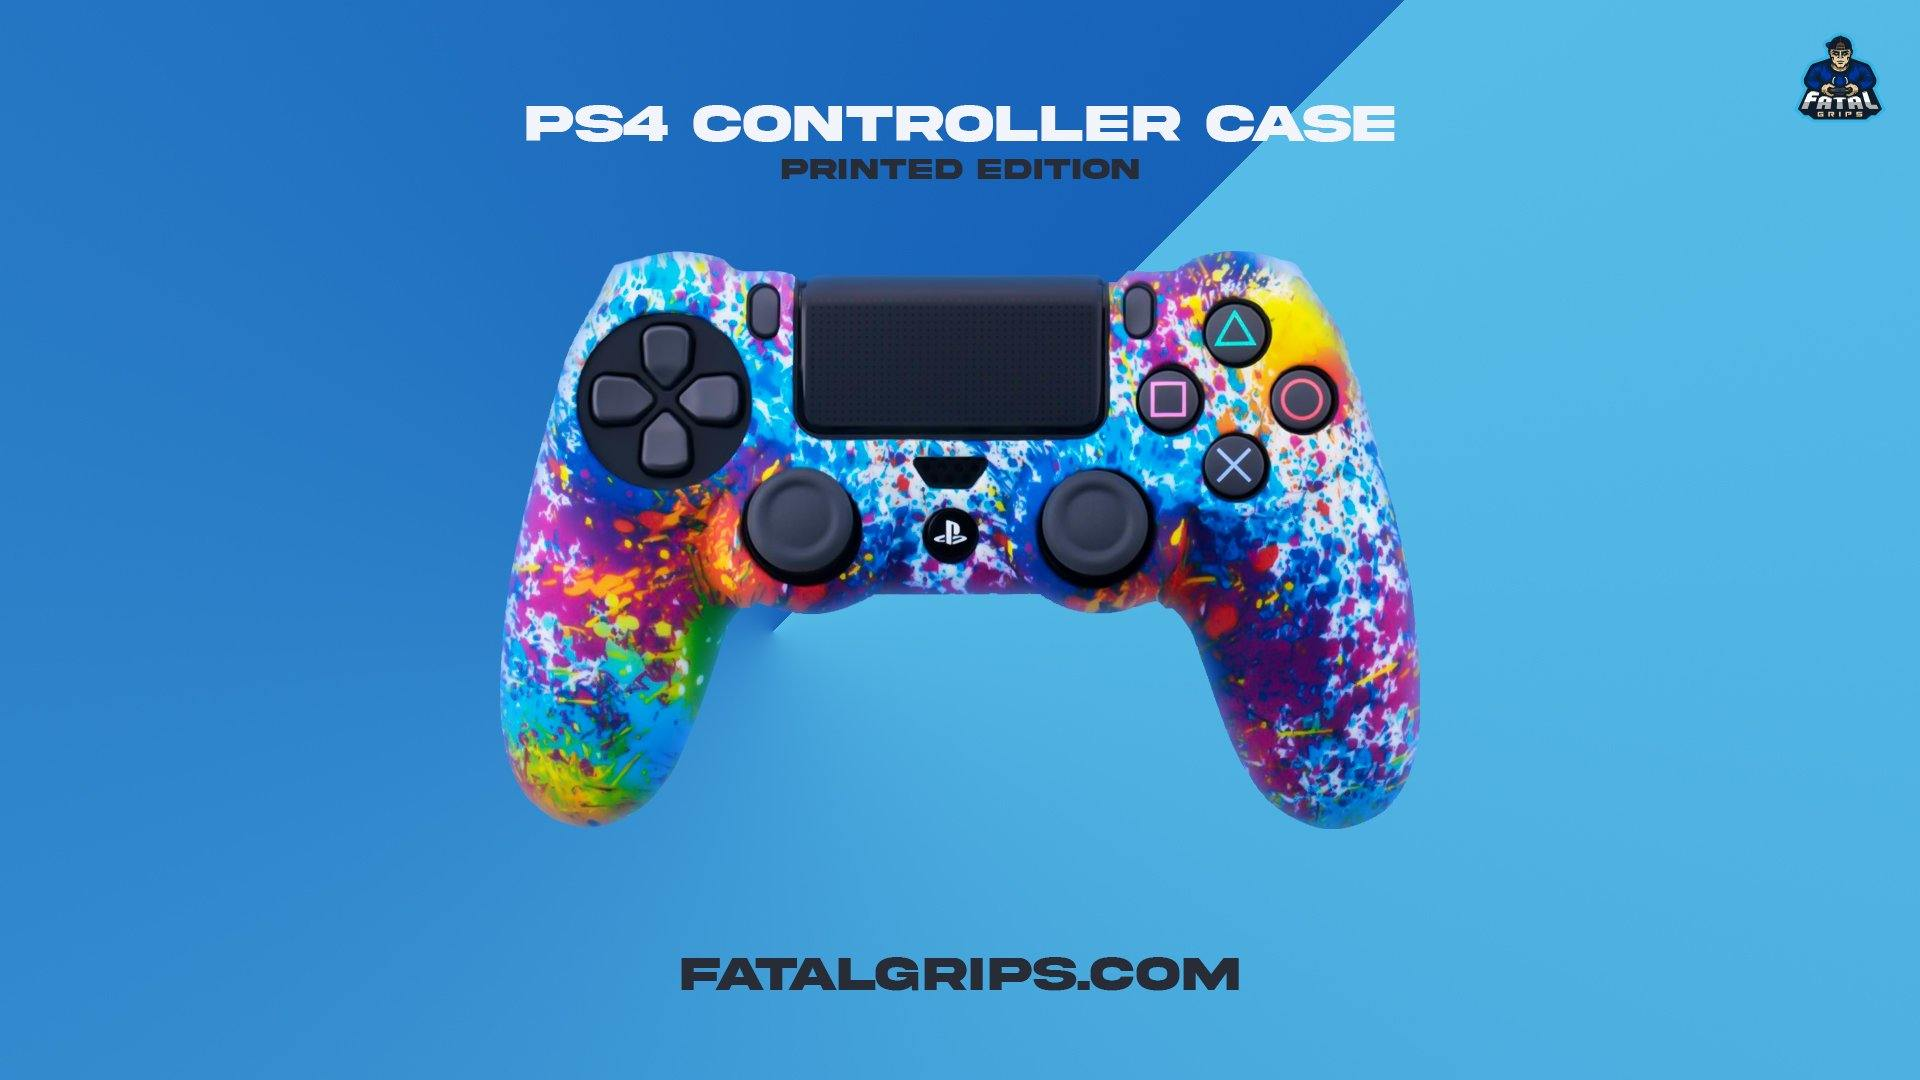 Infinite Paint PS4 Controller Case - Fatal Grips